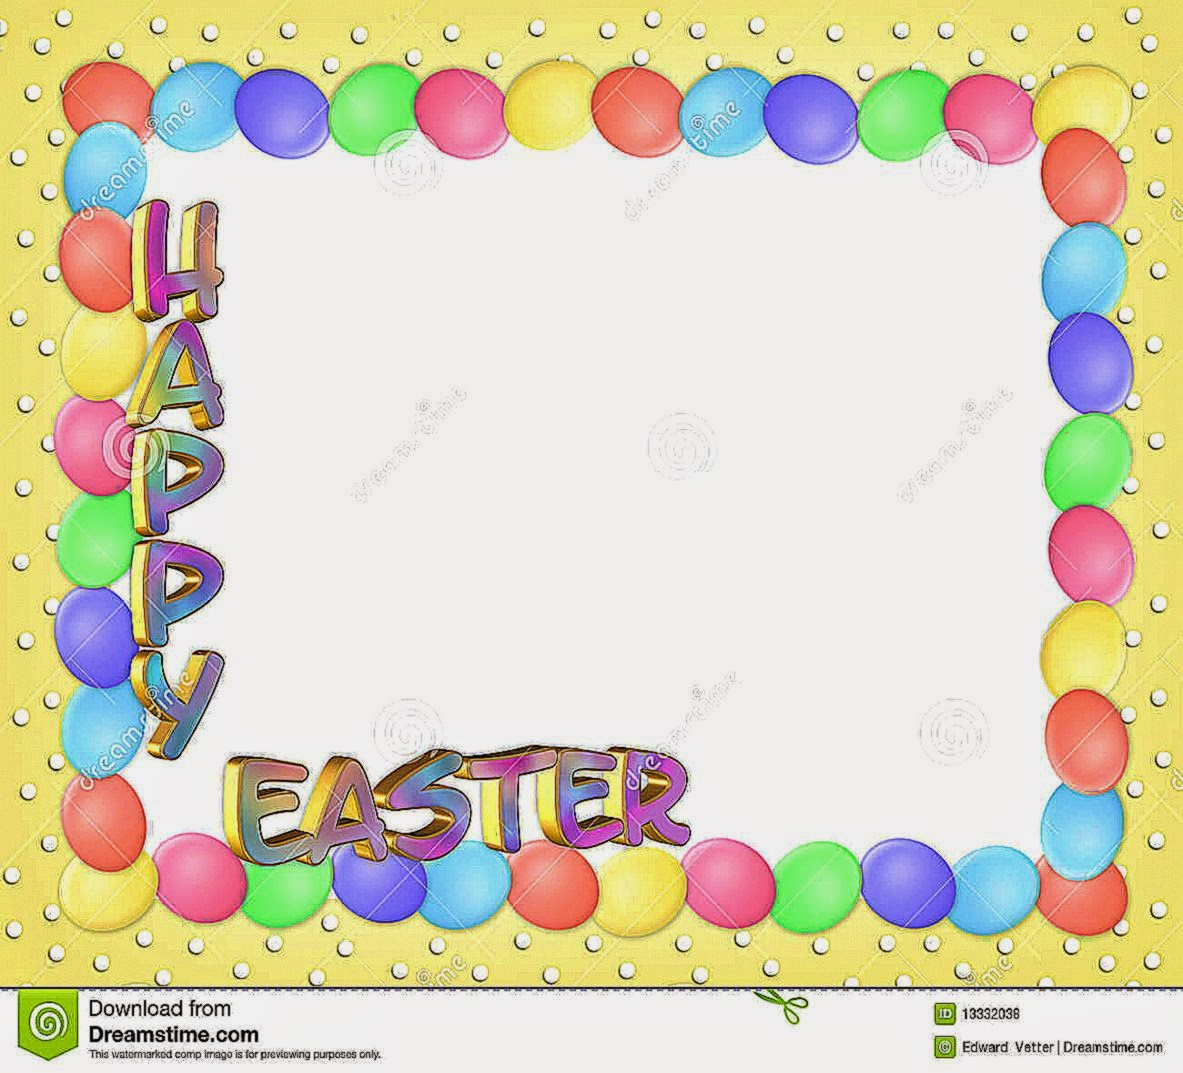 Easter Border Eggs 3D Text Royalty Free Stock Photography   Image